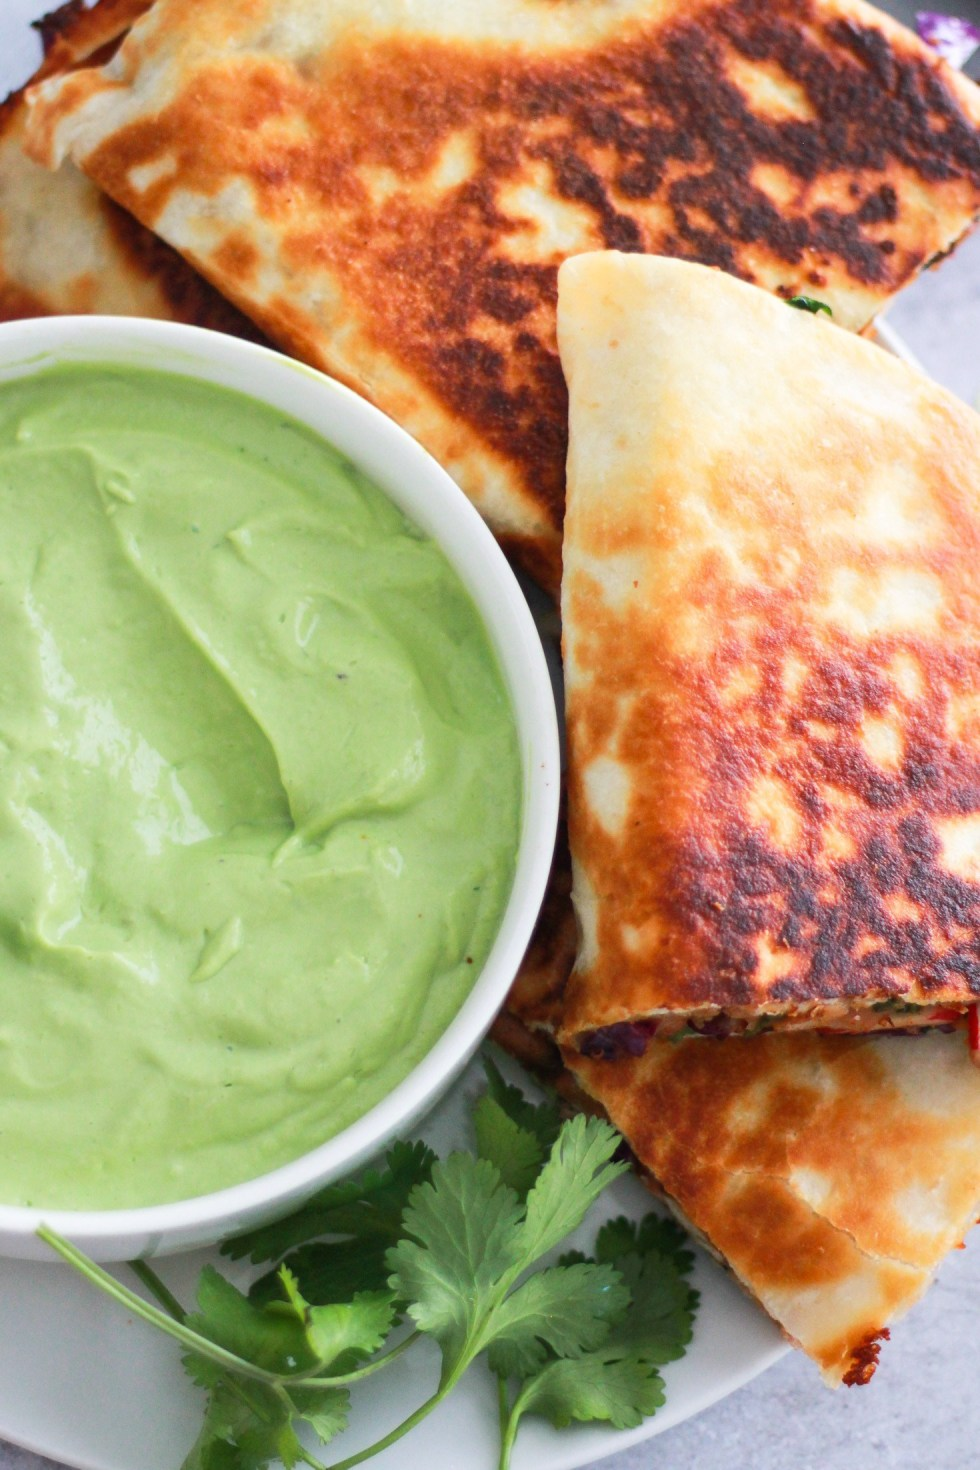 Vegetarian quesadillas with avocado sauce are easy college meals